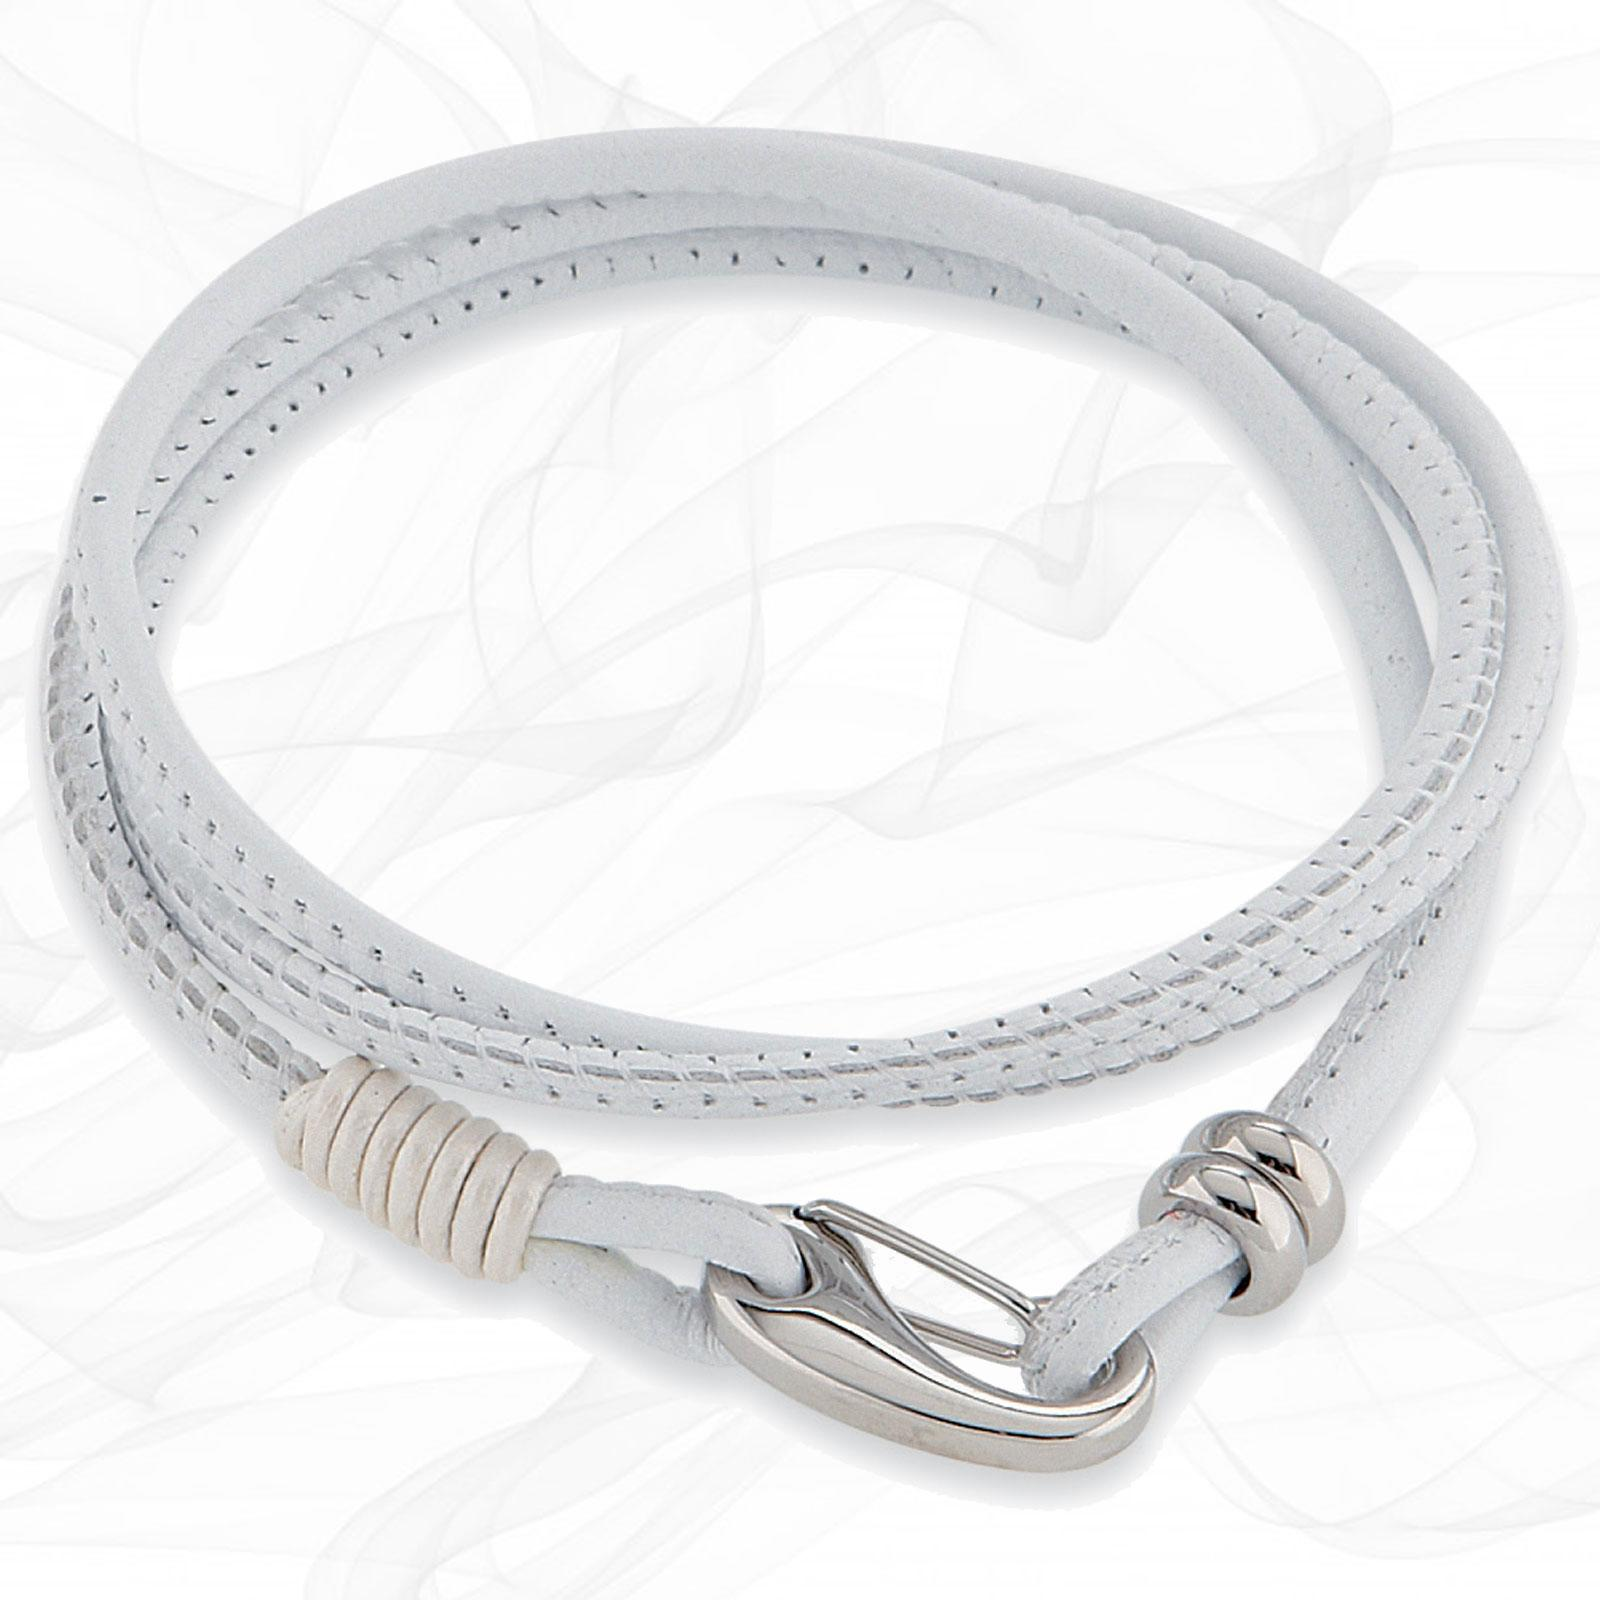 Simple White Smooth 3mm Na Double Wrap Leather Bracelet For Women